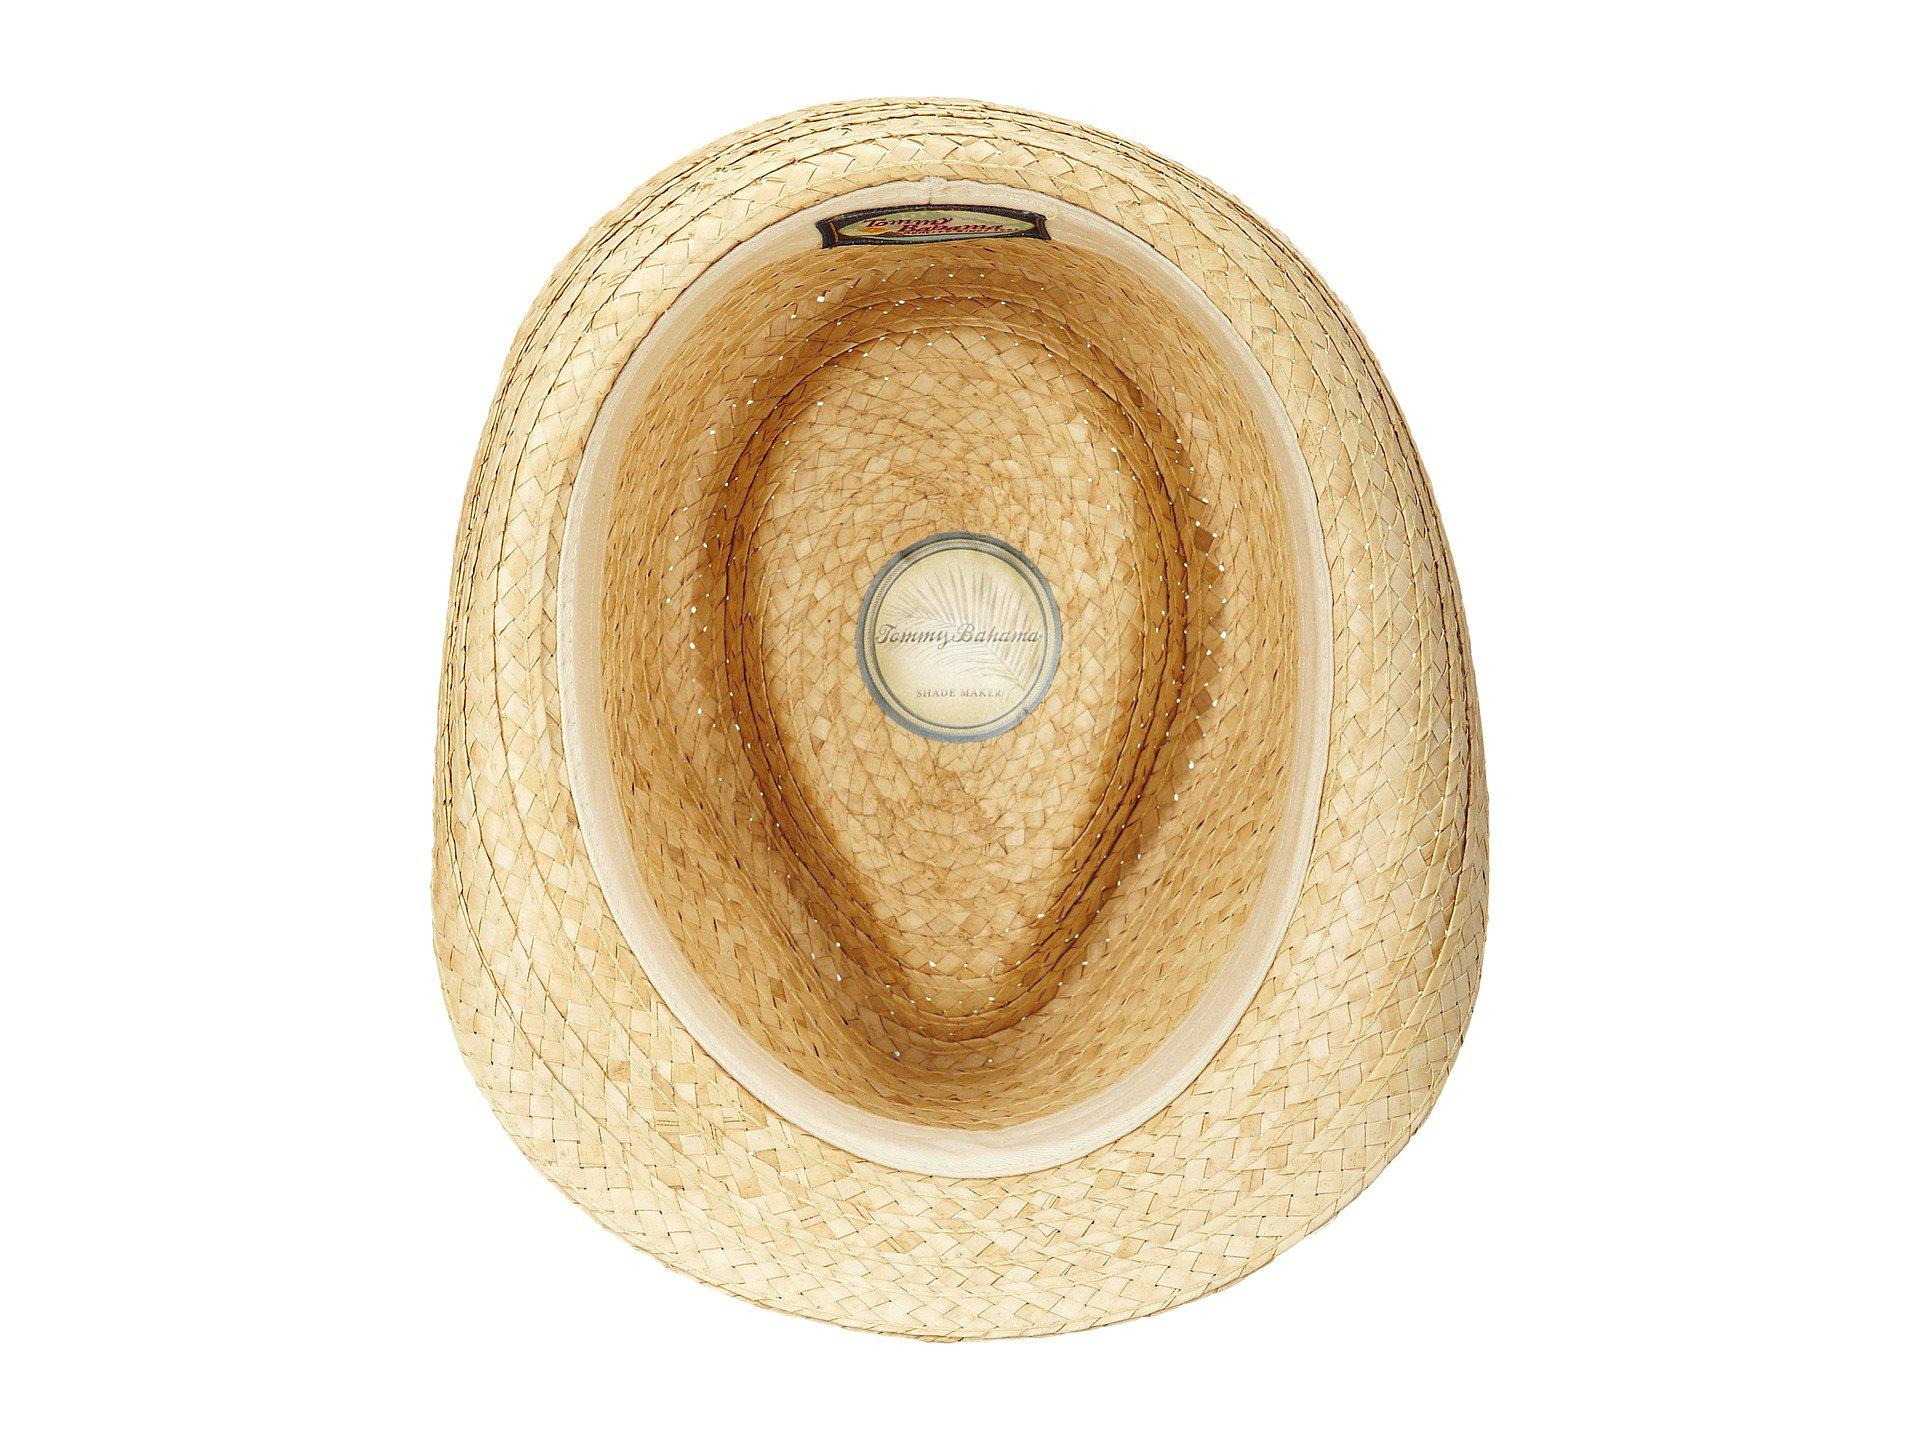 Lyst - Tommy Bahama Burned Raffia Fedora With Overlay Band X ... b6d2c740d64